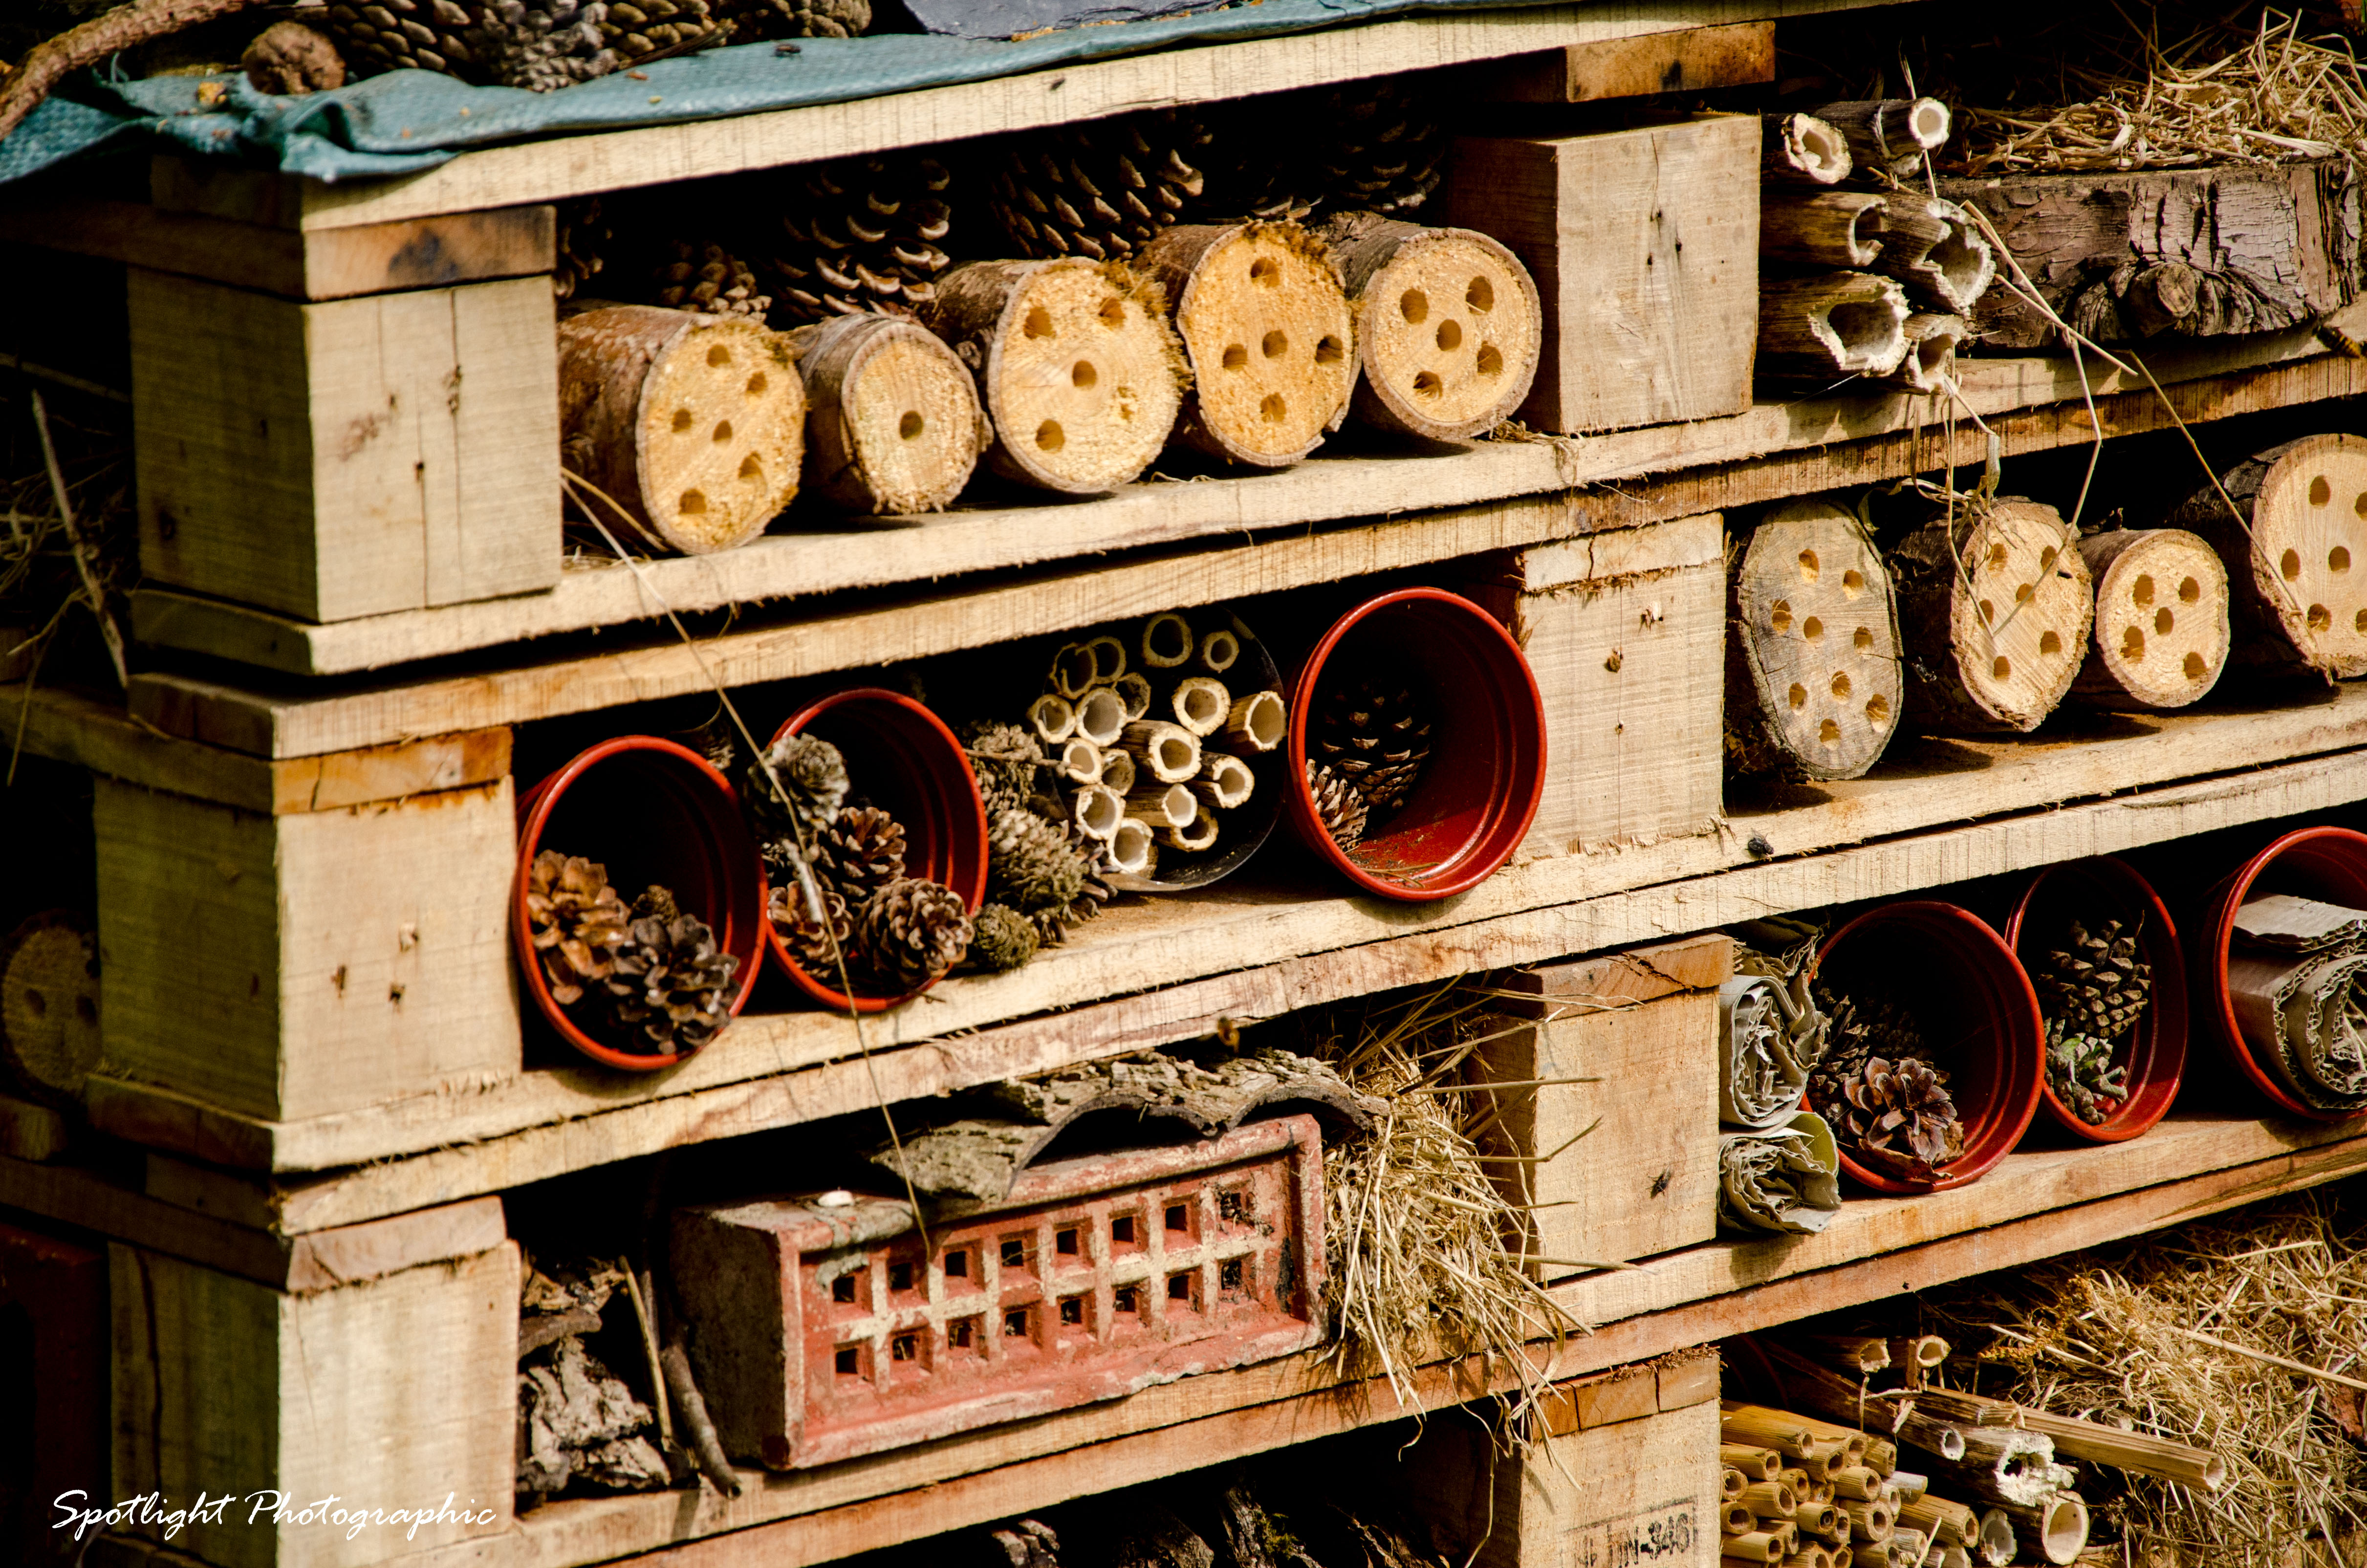 Homes for insects